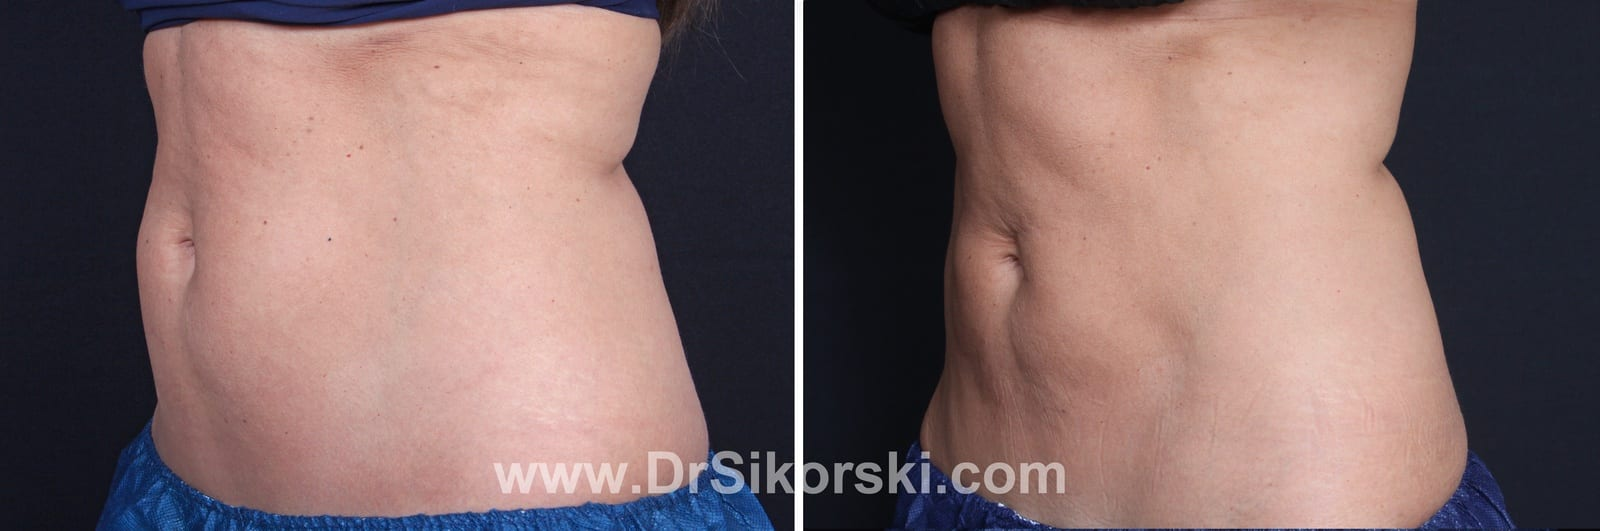 CoolSculpting Mission Viejo Before and After Patient E1